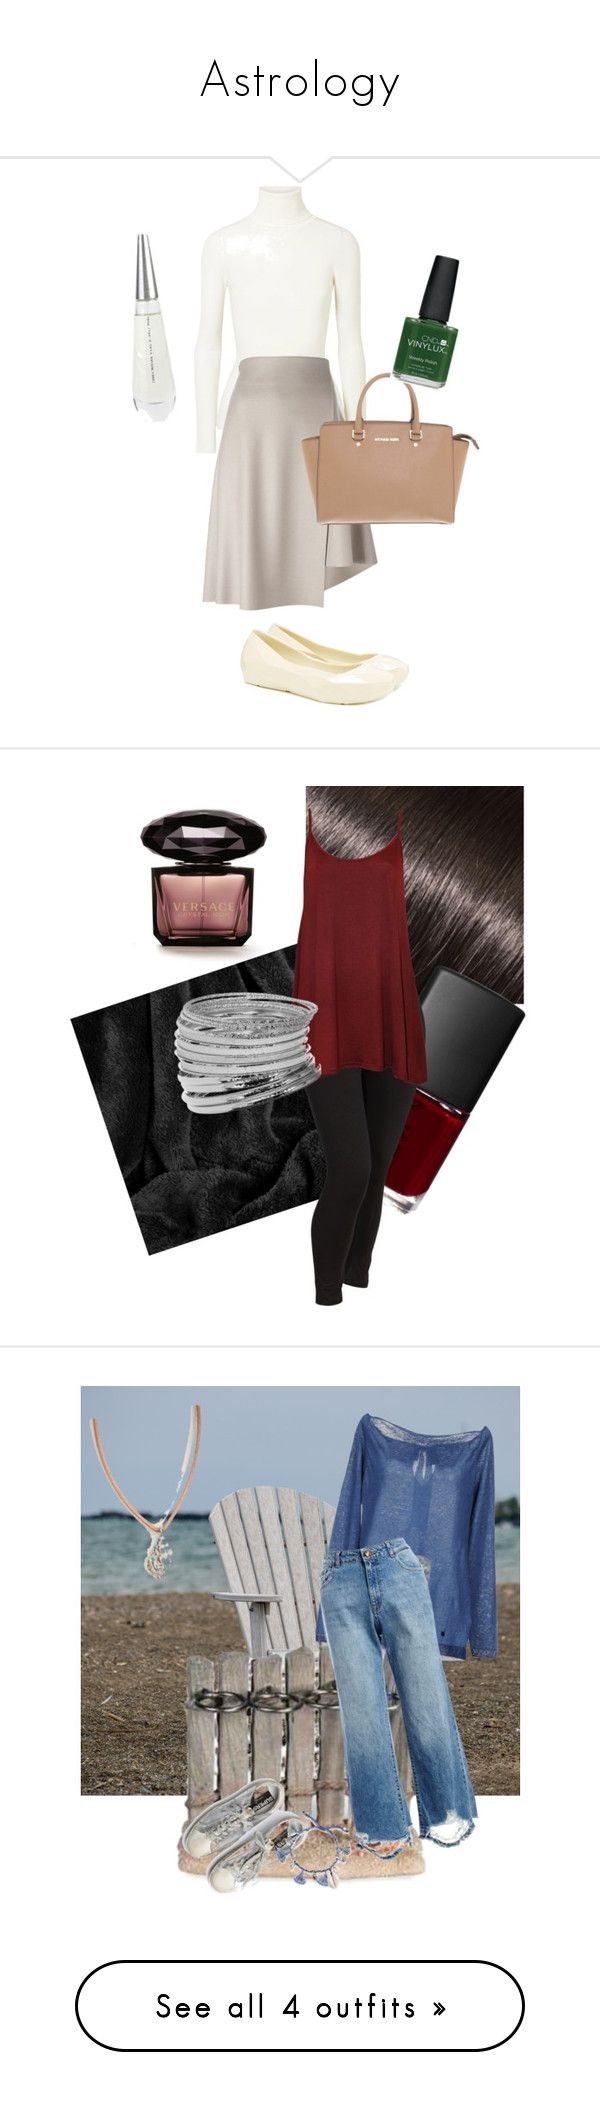 """""""Astrology"""" by lisemari ❤ liked on Polyvore featuring JoosTricot, 08 Sircus, Michael Kors, UN United Nude, CND, Issey Miyake, Donna Bella Designs, NARS Cosmetics, Versace and Berkshire Blanket"""